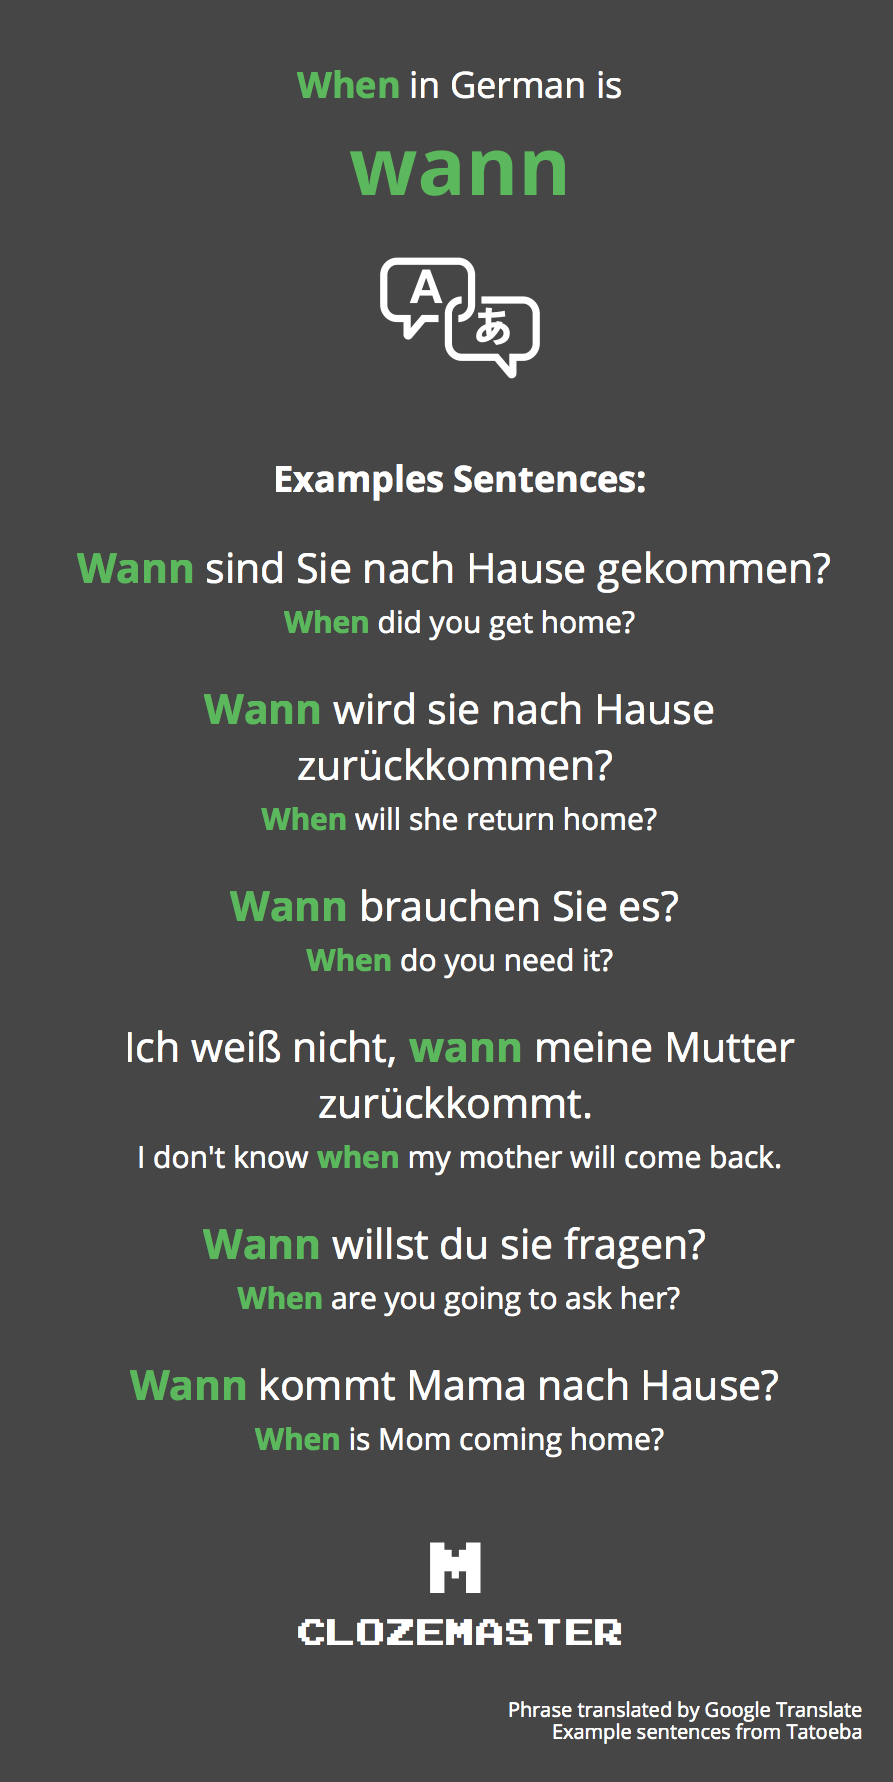 How To Say When In German Clozemaster